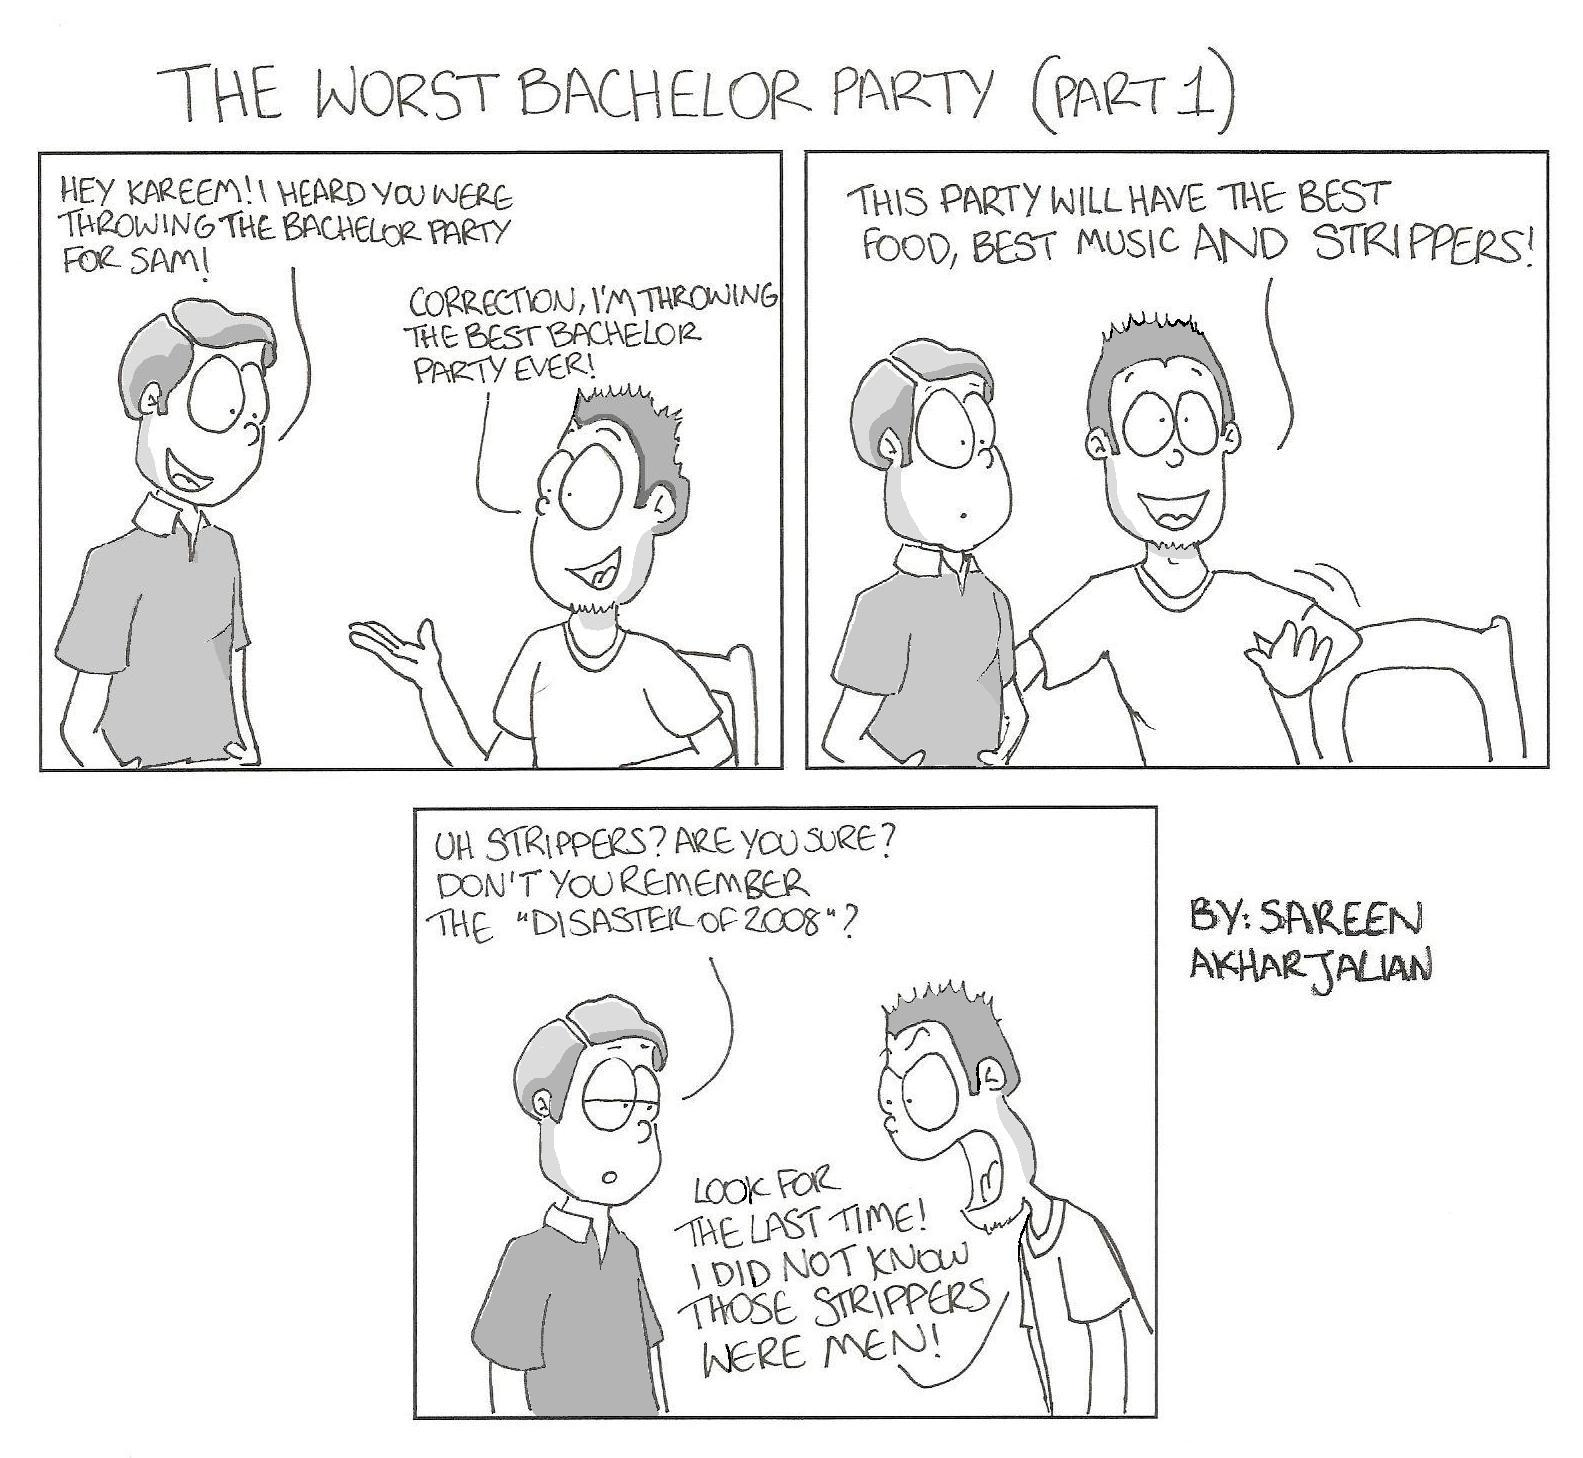 THE WORST BACHELOR PARTY (Part 1)